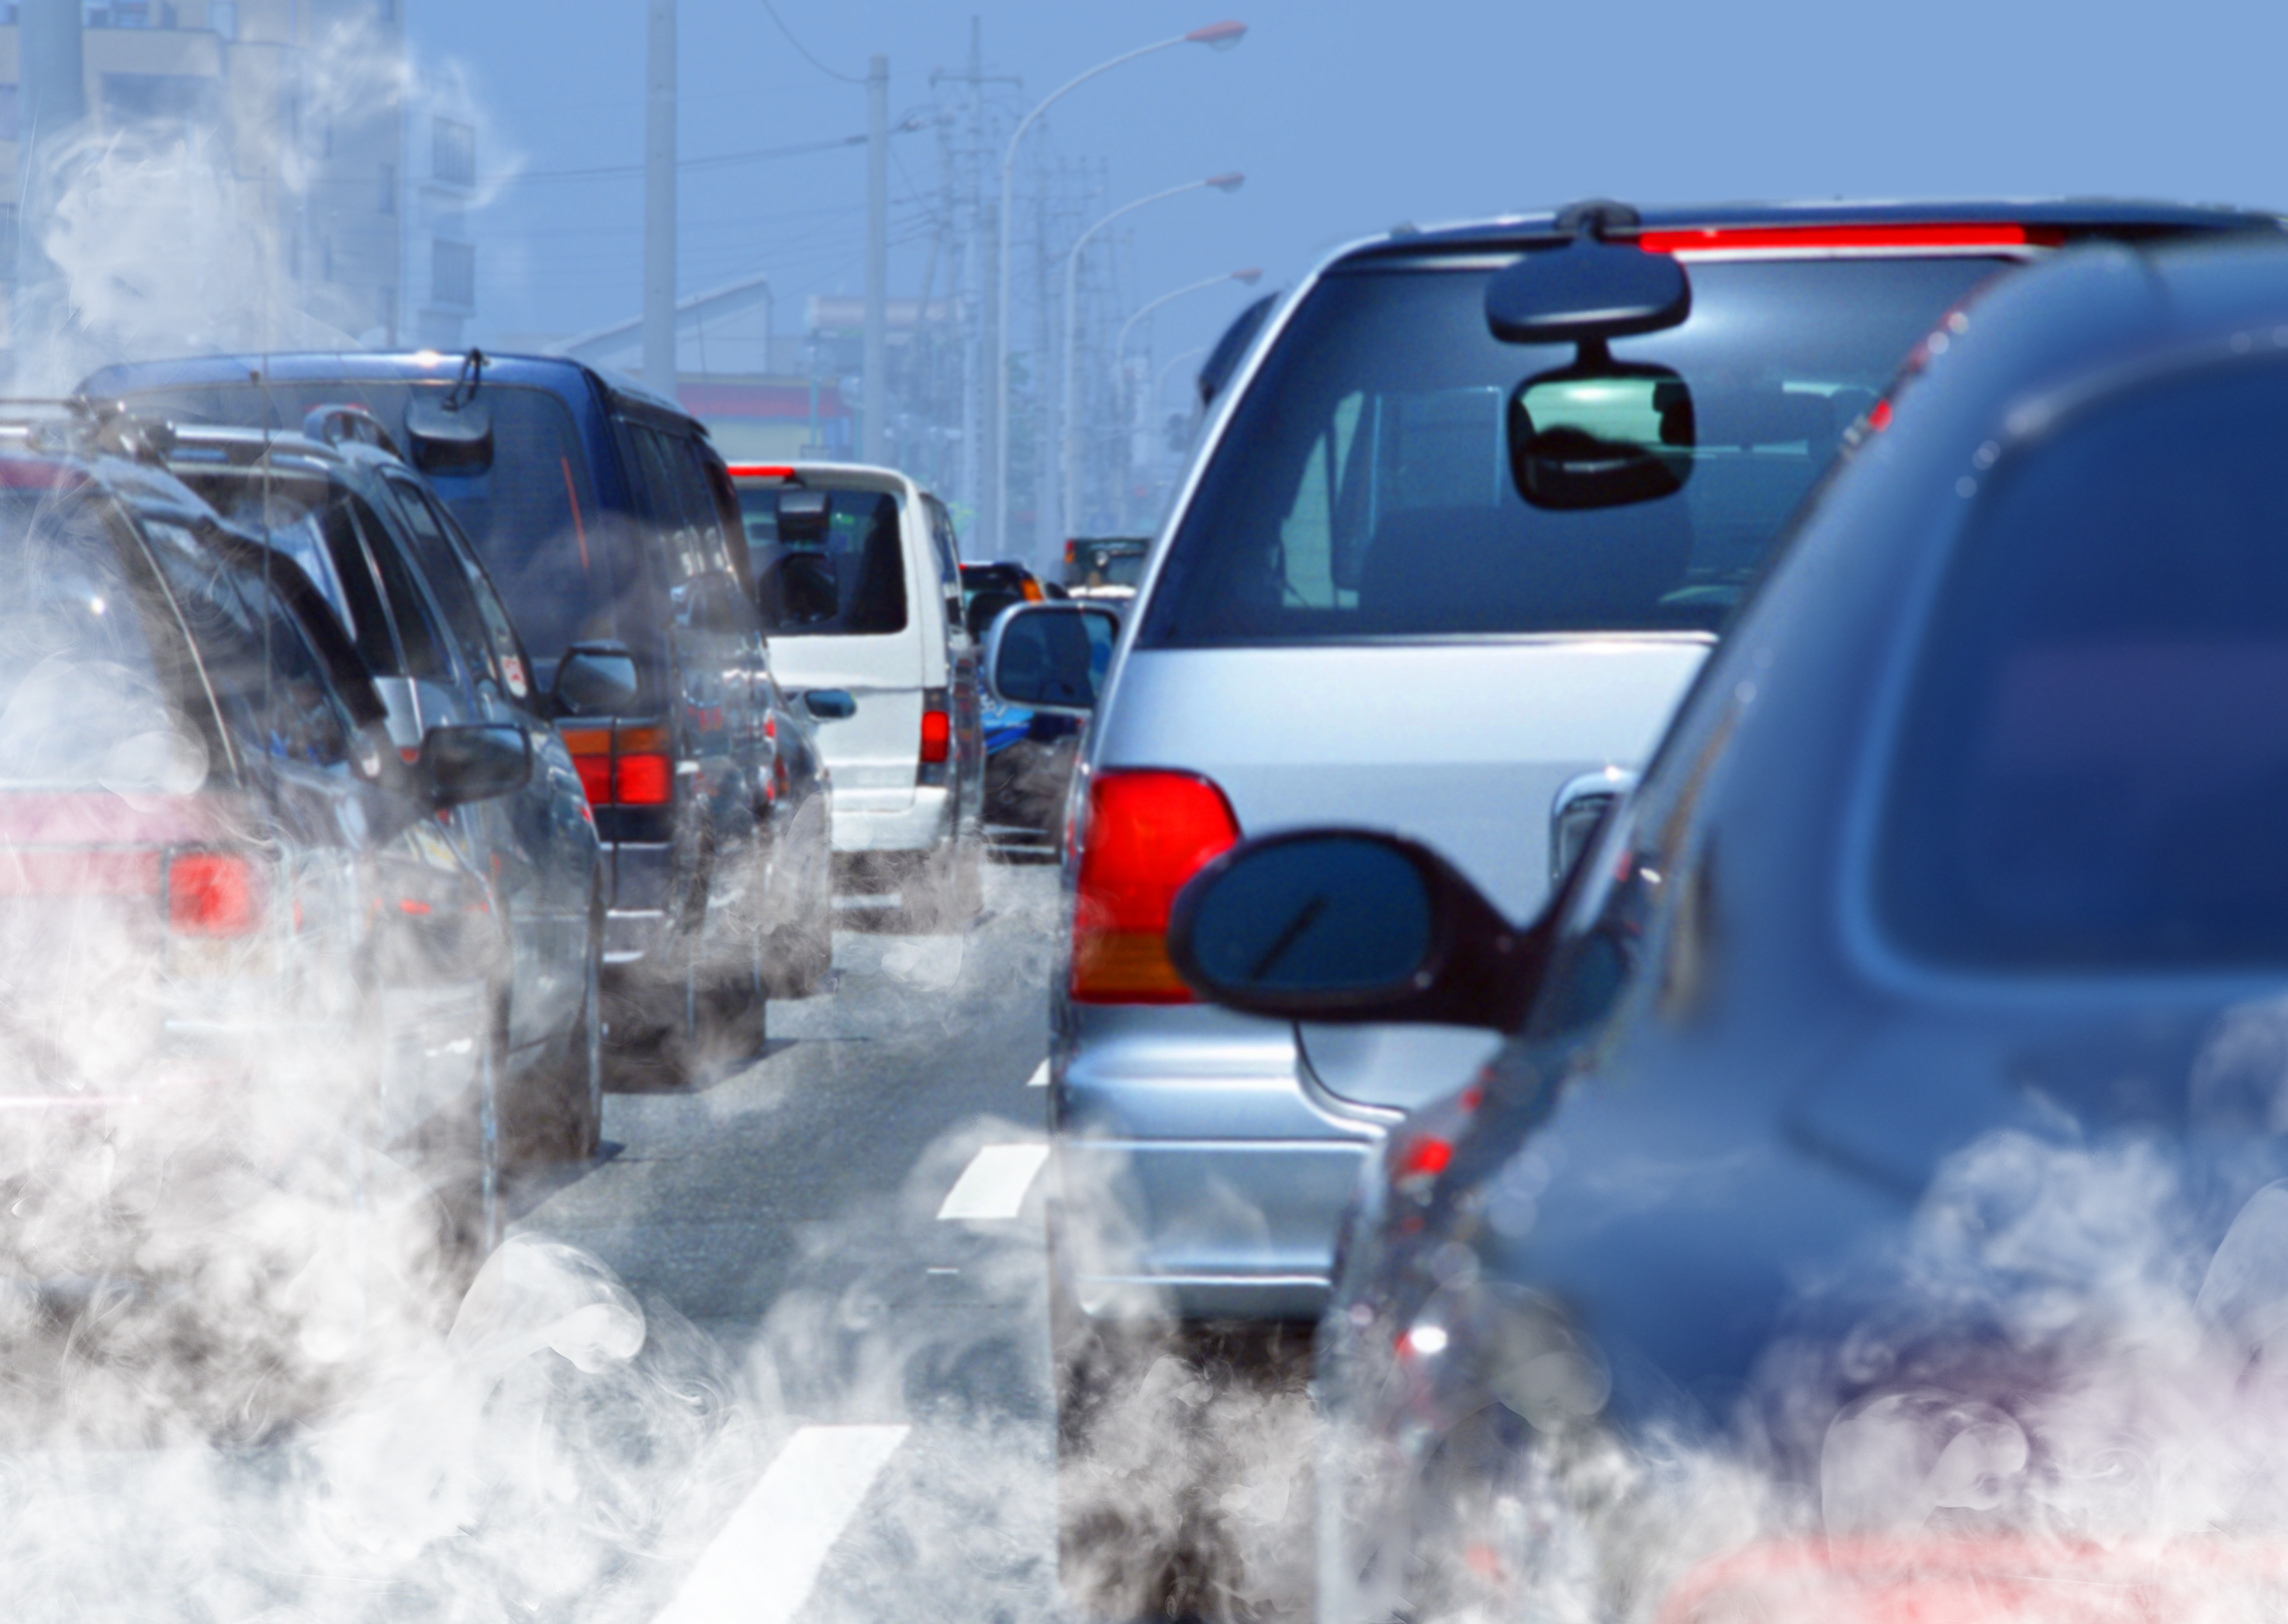 Toxic air pollution nanoparticles discovered in the human brain